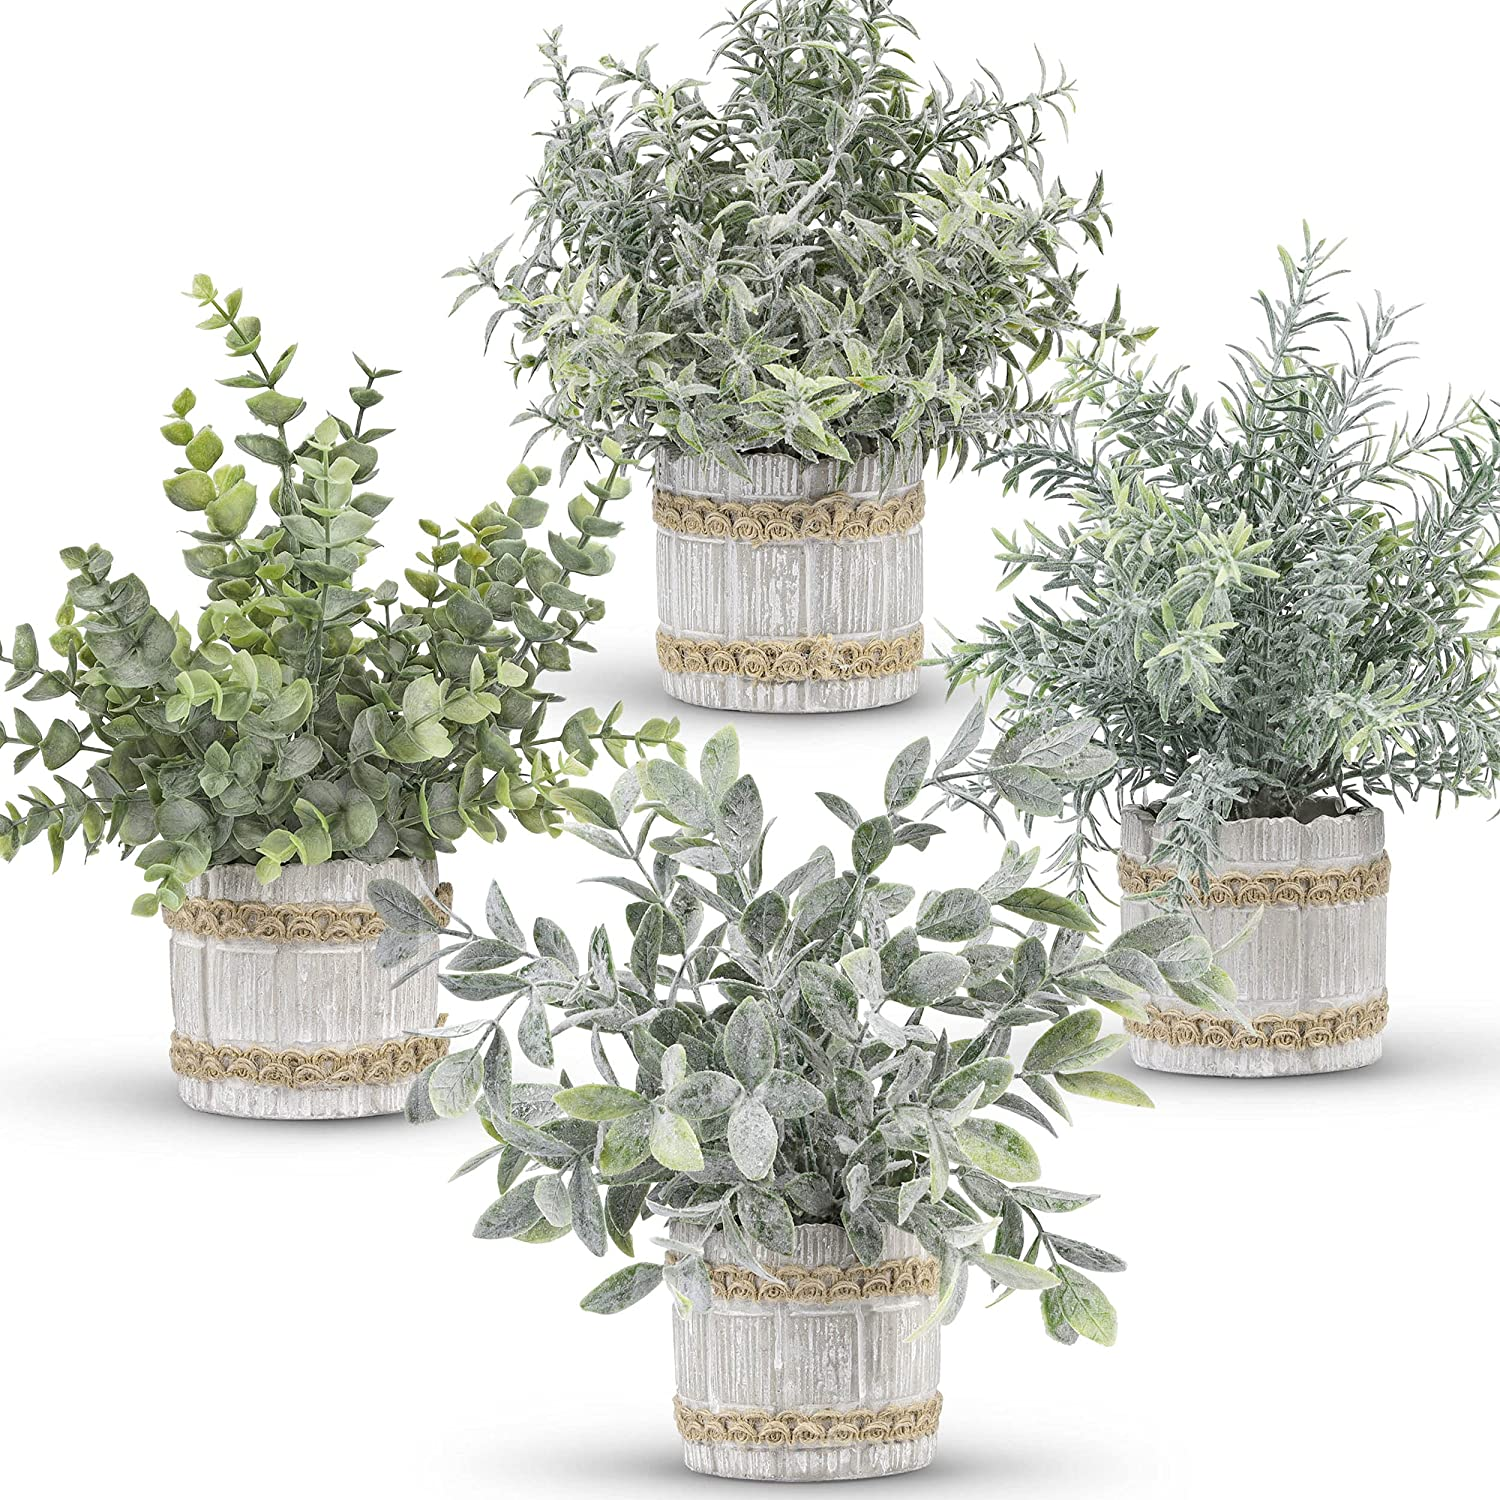 Der Rose 4 Packs Small Fake Plants Artificial Greenery Potted Plants for Home Décor Indoor